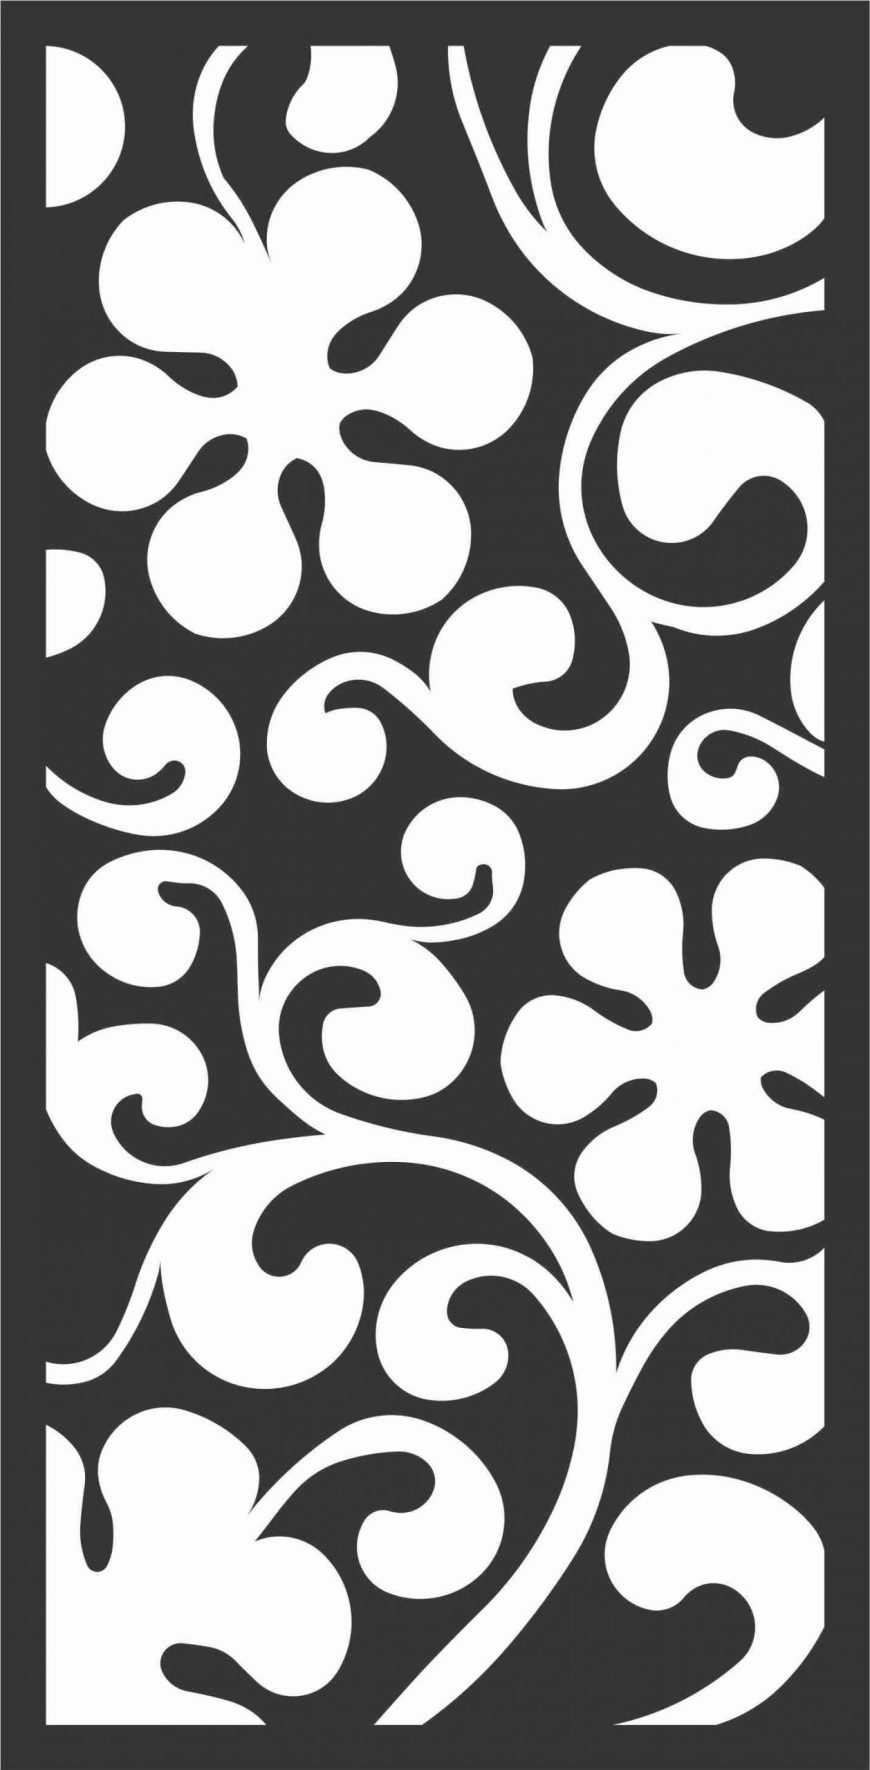 Floral Screen Patterns Design 58 Free DXF File